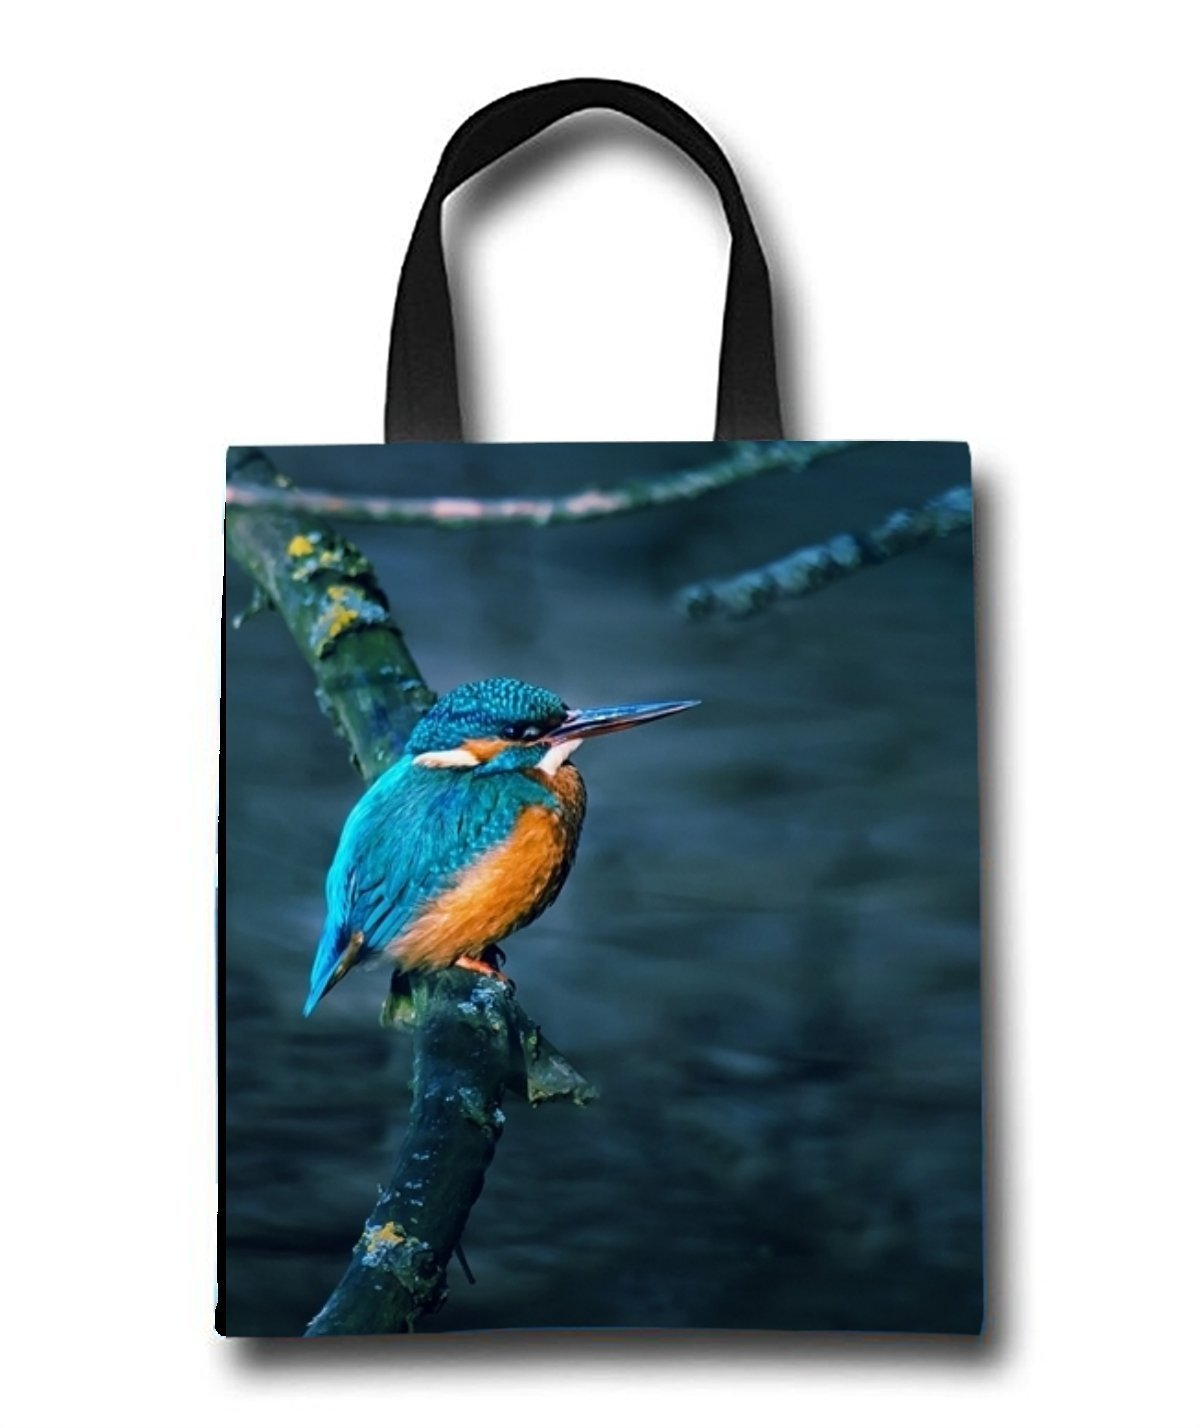 Gorgeous Little Bird Beach Tote Bag - Toy Tote Bag - Large Lightweight Market, Grocery & Picnic